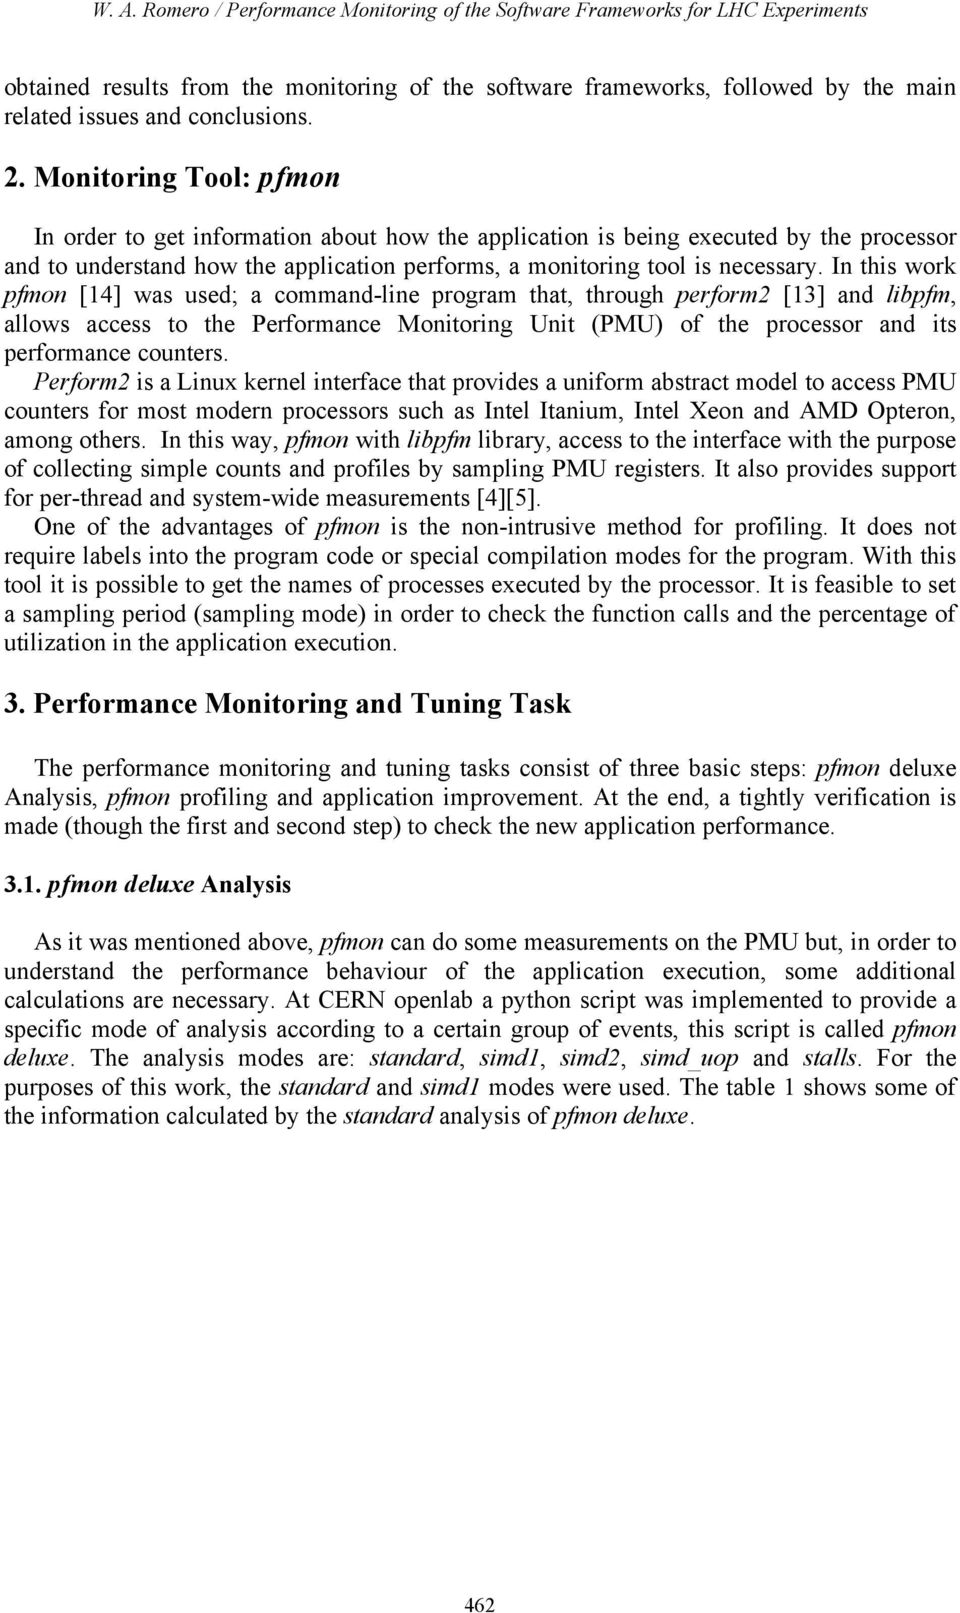 In this work pfmon [14] was used; a command-line program that, through perform2 [13] and libpfm, allows access to the Performance Monitoring Unit (PMU) of the processor and its performance counters.